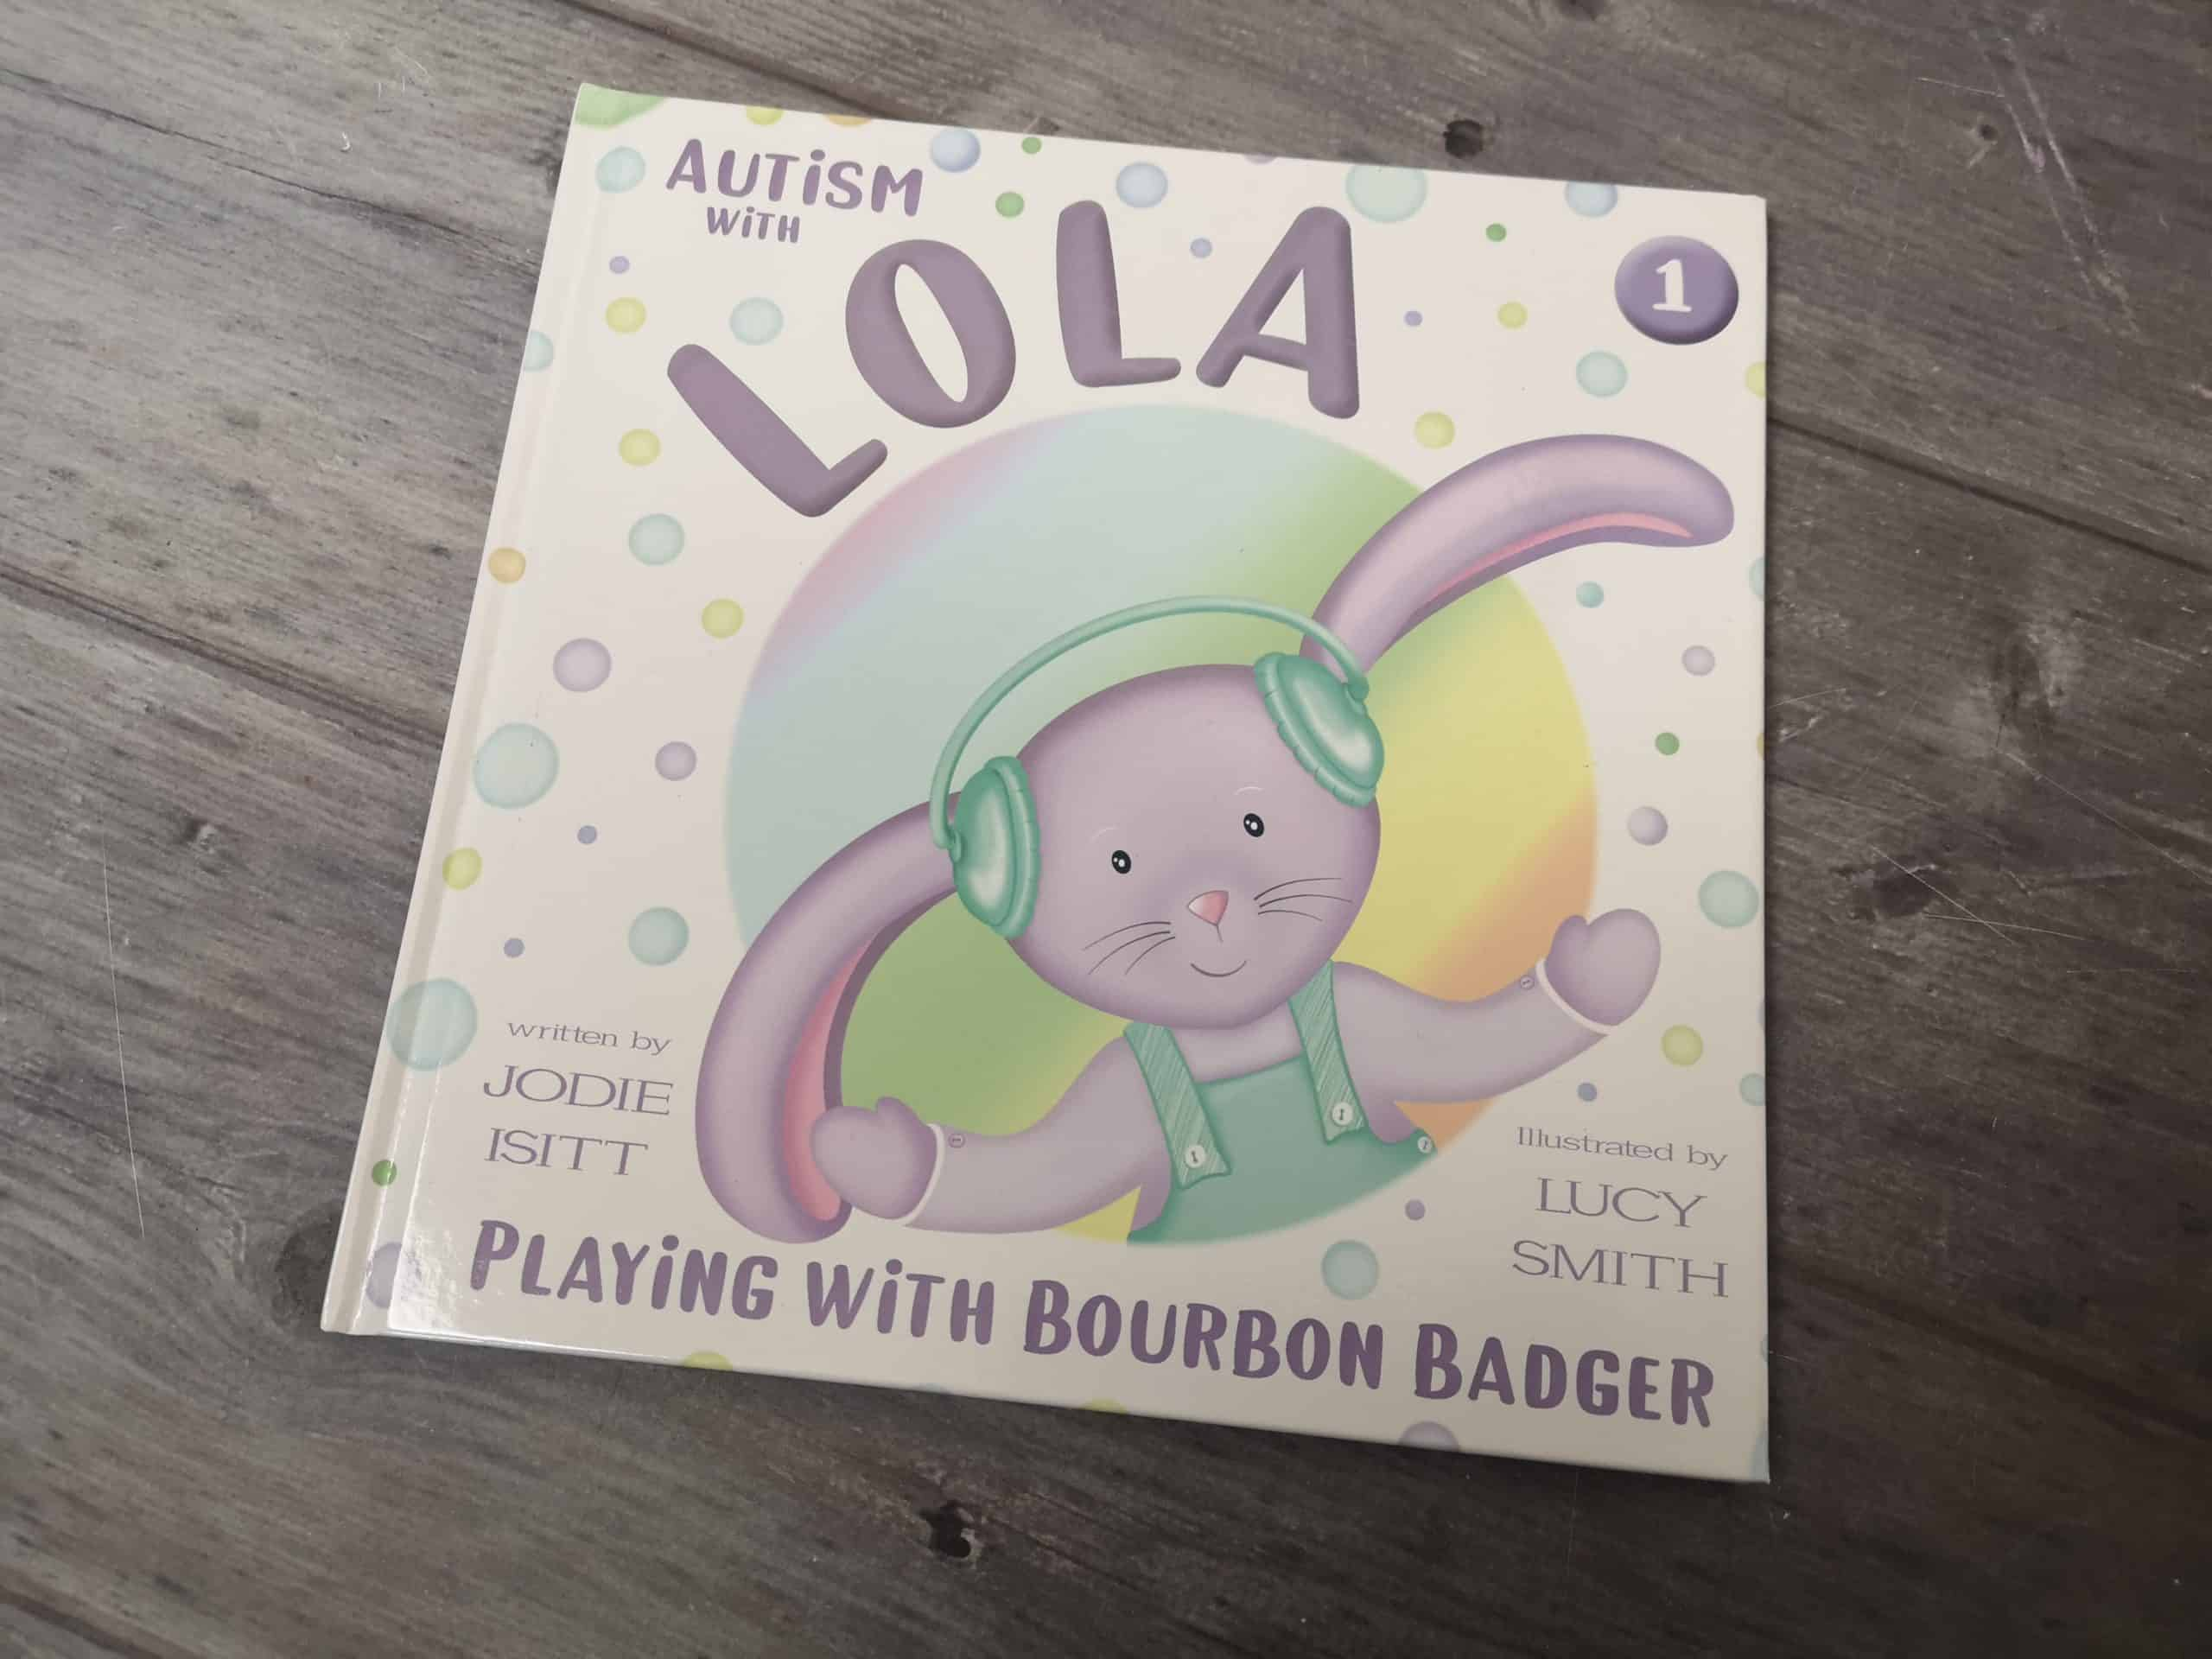 Autism with Lola: Playing with Bourbon Badger Book